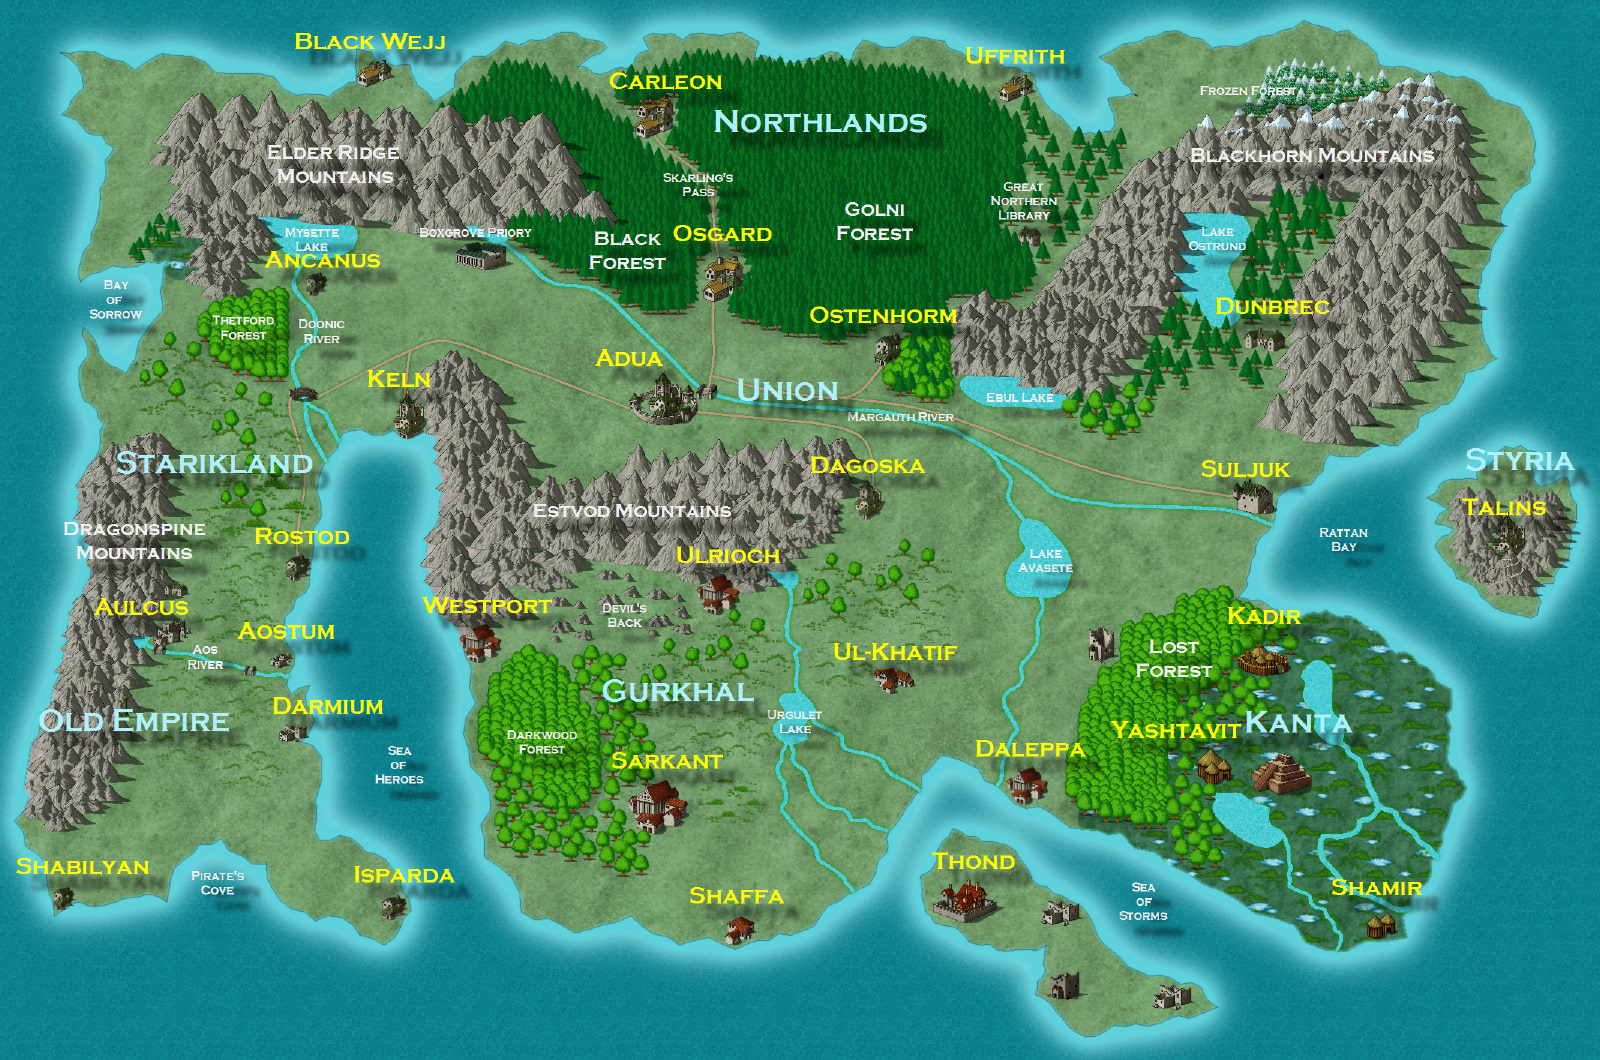 World | Reign of the Corrupt | Obsidian Portal on elementary world map, nashville world map, camelot world map, eureka world map, d&d 4e world map, vegas world map, heroes world map, oz world map, power world map, once upon a time world map, remnant world map, the legend of korra world map, ancient aliens world map, the amazing race world map, zoo world map, the river world map, hands on world map,